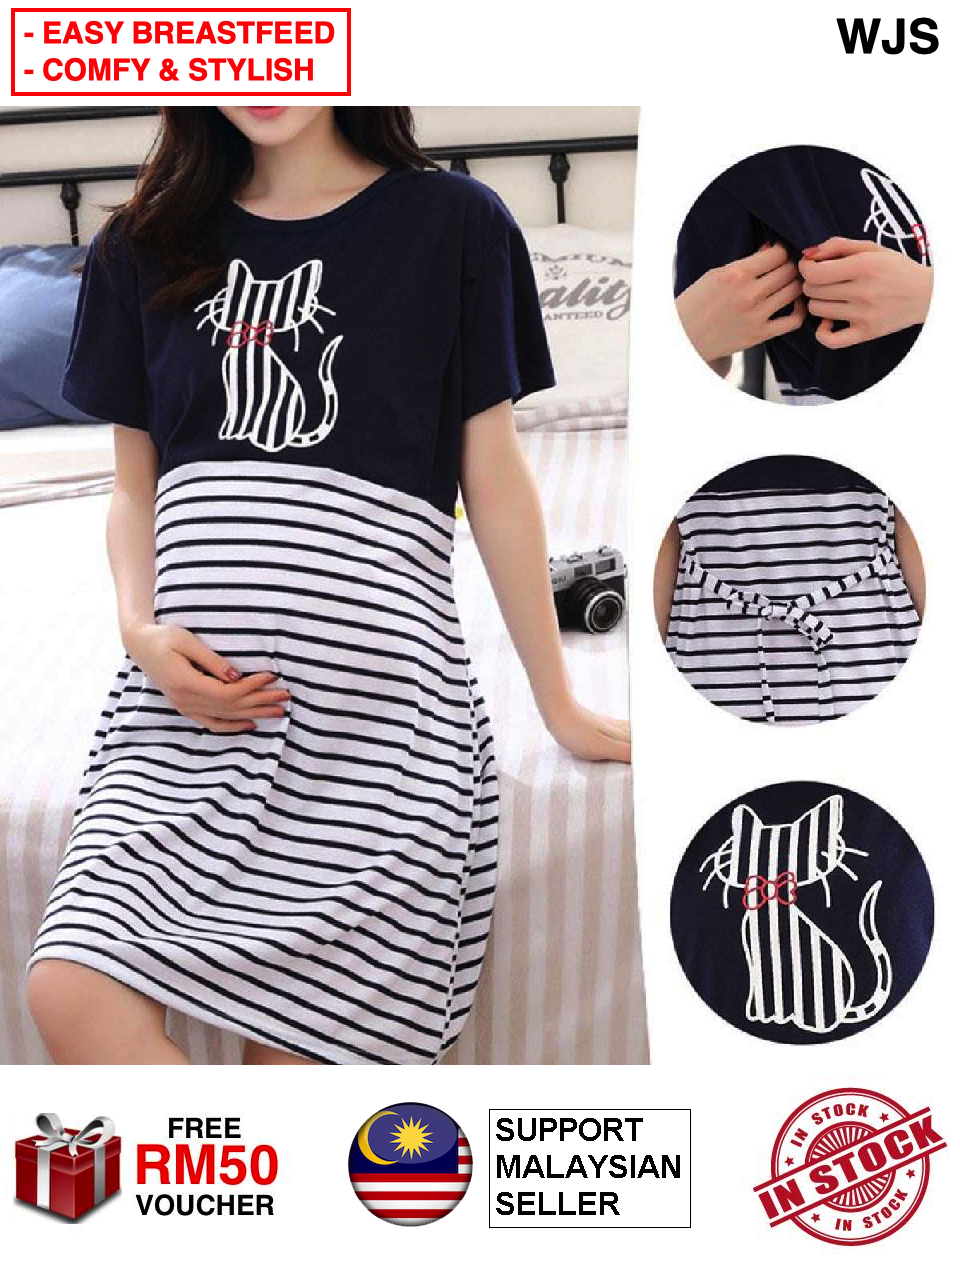 (BREASTFEED + STYLISH) WJS Latest Fashion Women Maternity Cat Stripe Dress Summer Dresses Breastfeeding Clothes Breastfeed Dress Pregnant Dress Mother Dress Clothes Pakaian Ibu Mengandung Menyusu BLUE GREY [FREE RM 50 VOUCHER]